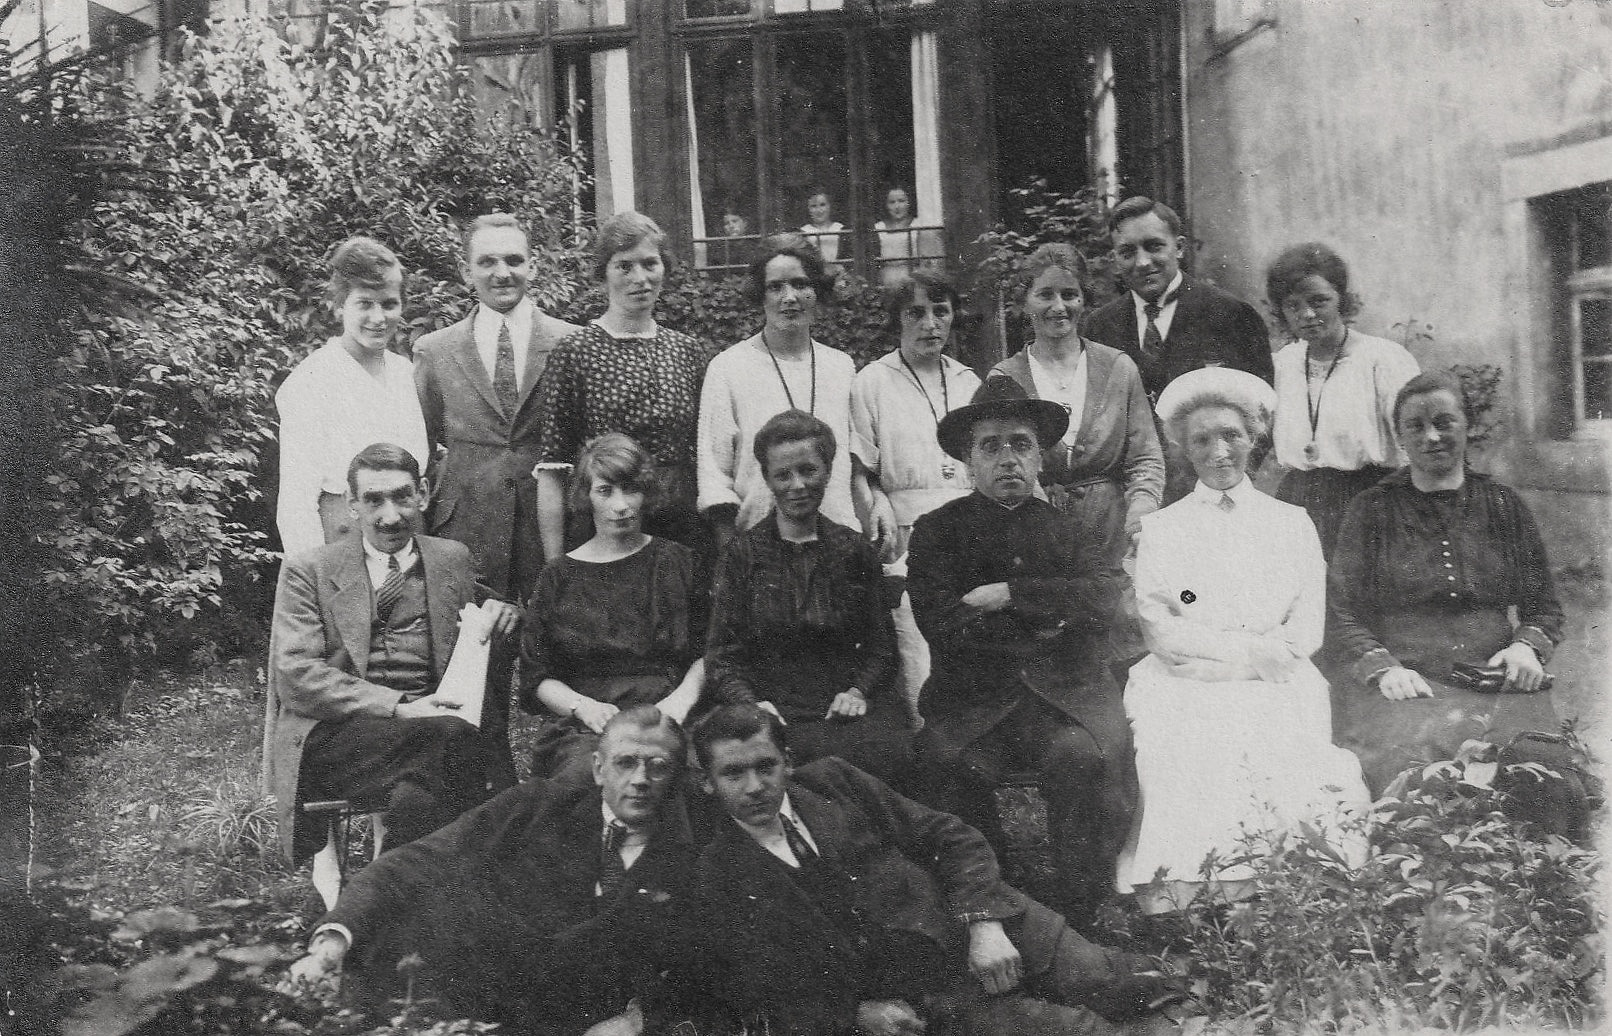 Staff and patients at the sanatorium. Dr. Otto Walther and his wife, Dr. Hope Adams, the first female doctor in Germany, founded the hospital in the late 19th century. My mother is on the right of the top row.